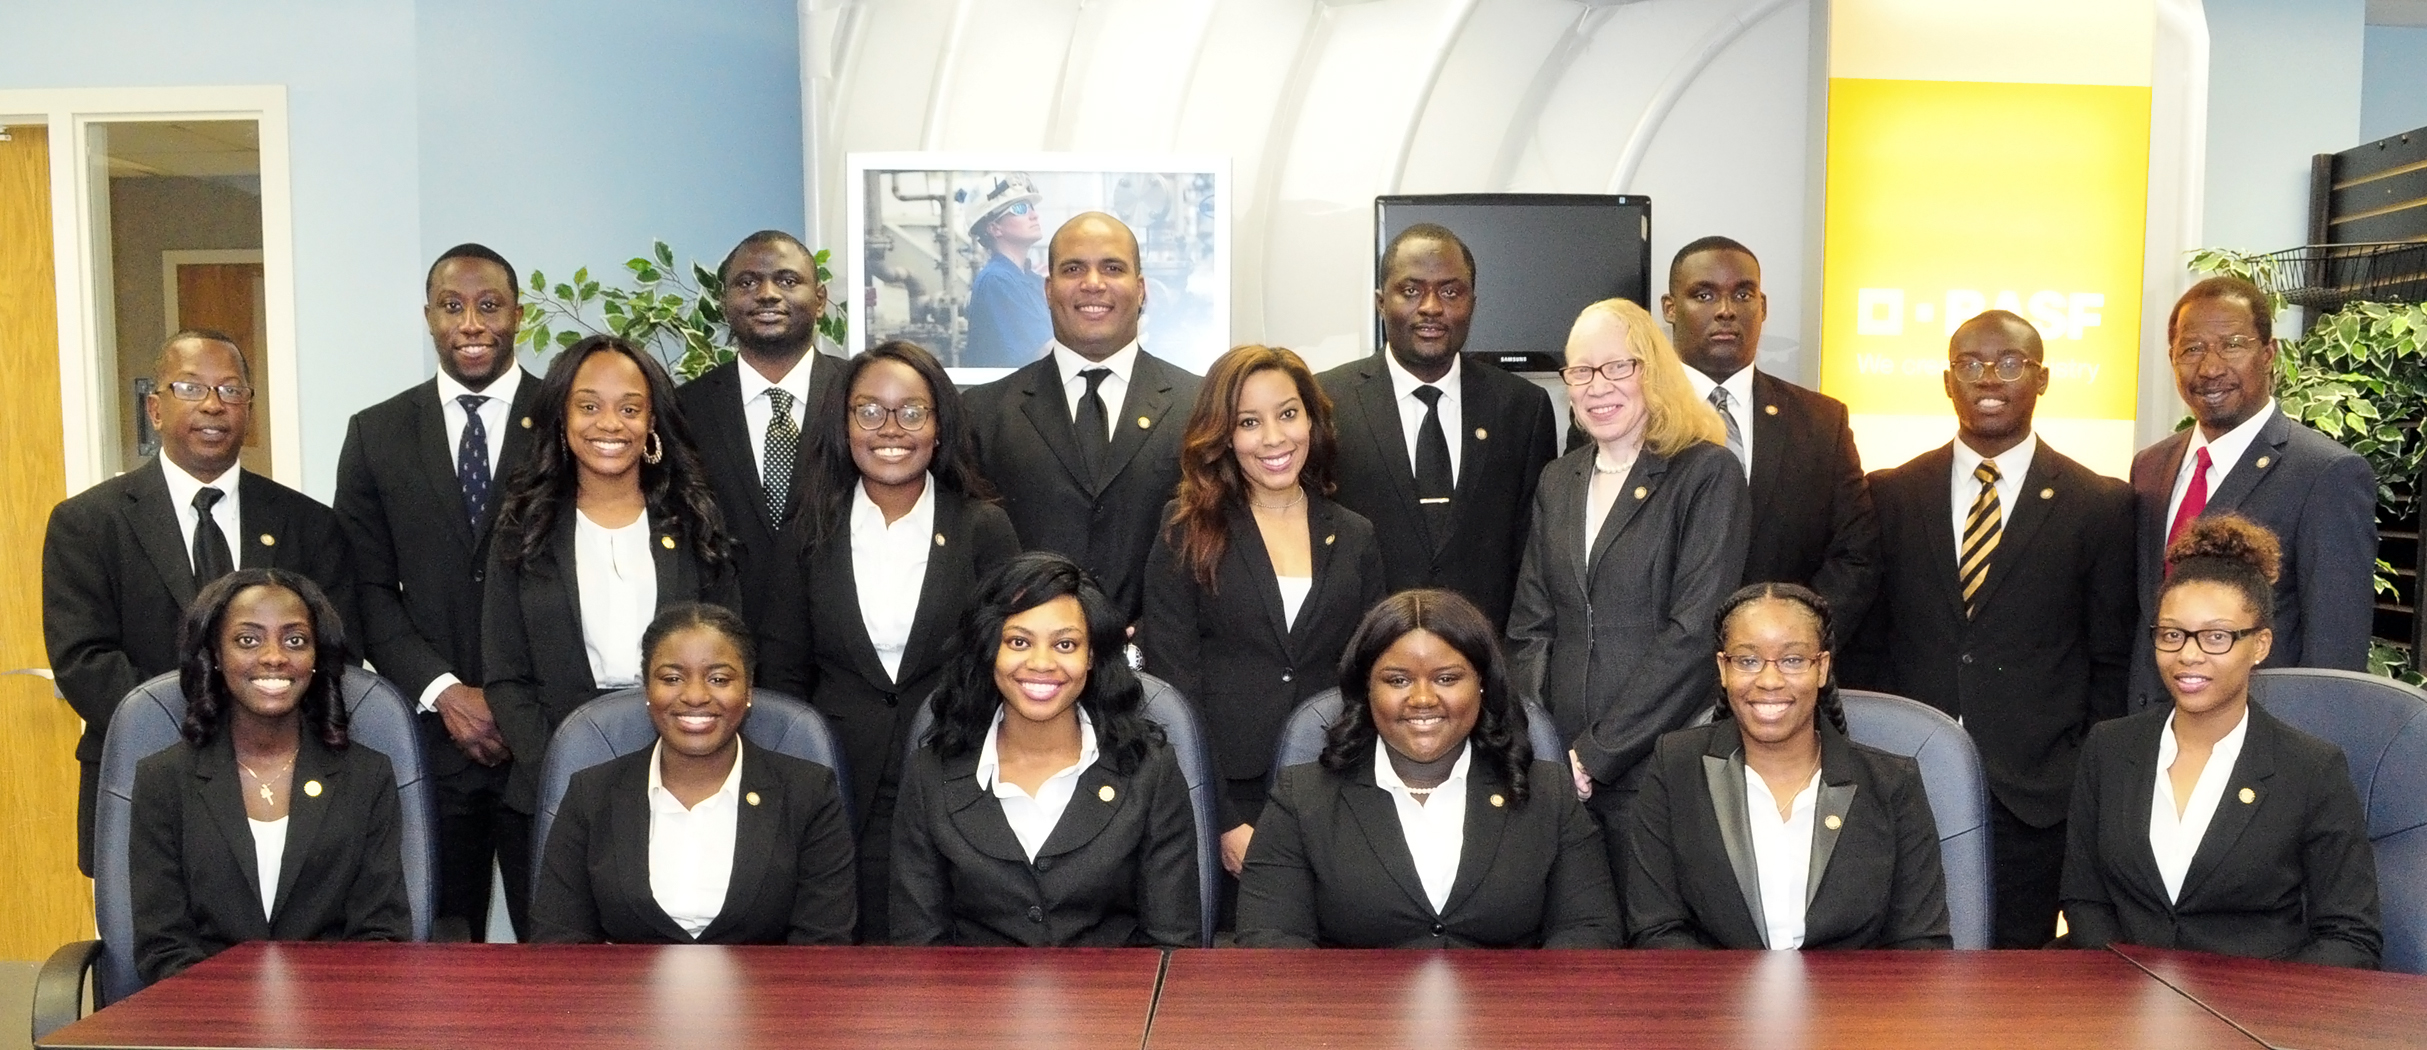 First row: (Seated Left to Right) Paula Marie Mensah, Lela Murdock, Alana Stevenson, Jasmine Singleton, Jasmine Price, Kamrie Dillard   Second Row: (Standing Left to Right) Eric Pugh, Zana Harris, Angel Caston, Brittany Price, Chie Tamara Montgomery-Lead TMCF Campus Organizer  Back Row: (Standing Left to Right) Ryan Tucker, John Paul Oyibo, Jason Peters, Chie Awunah, Alex Mckee, Nathan Morrison, and Dr. Diola Bagayoko.